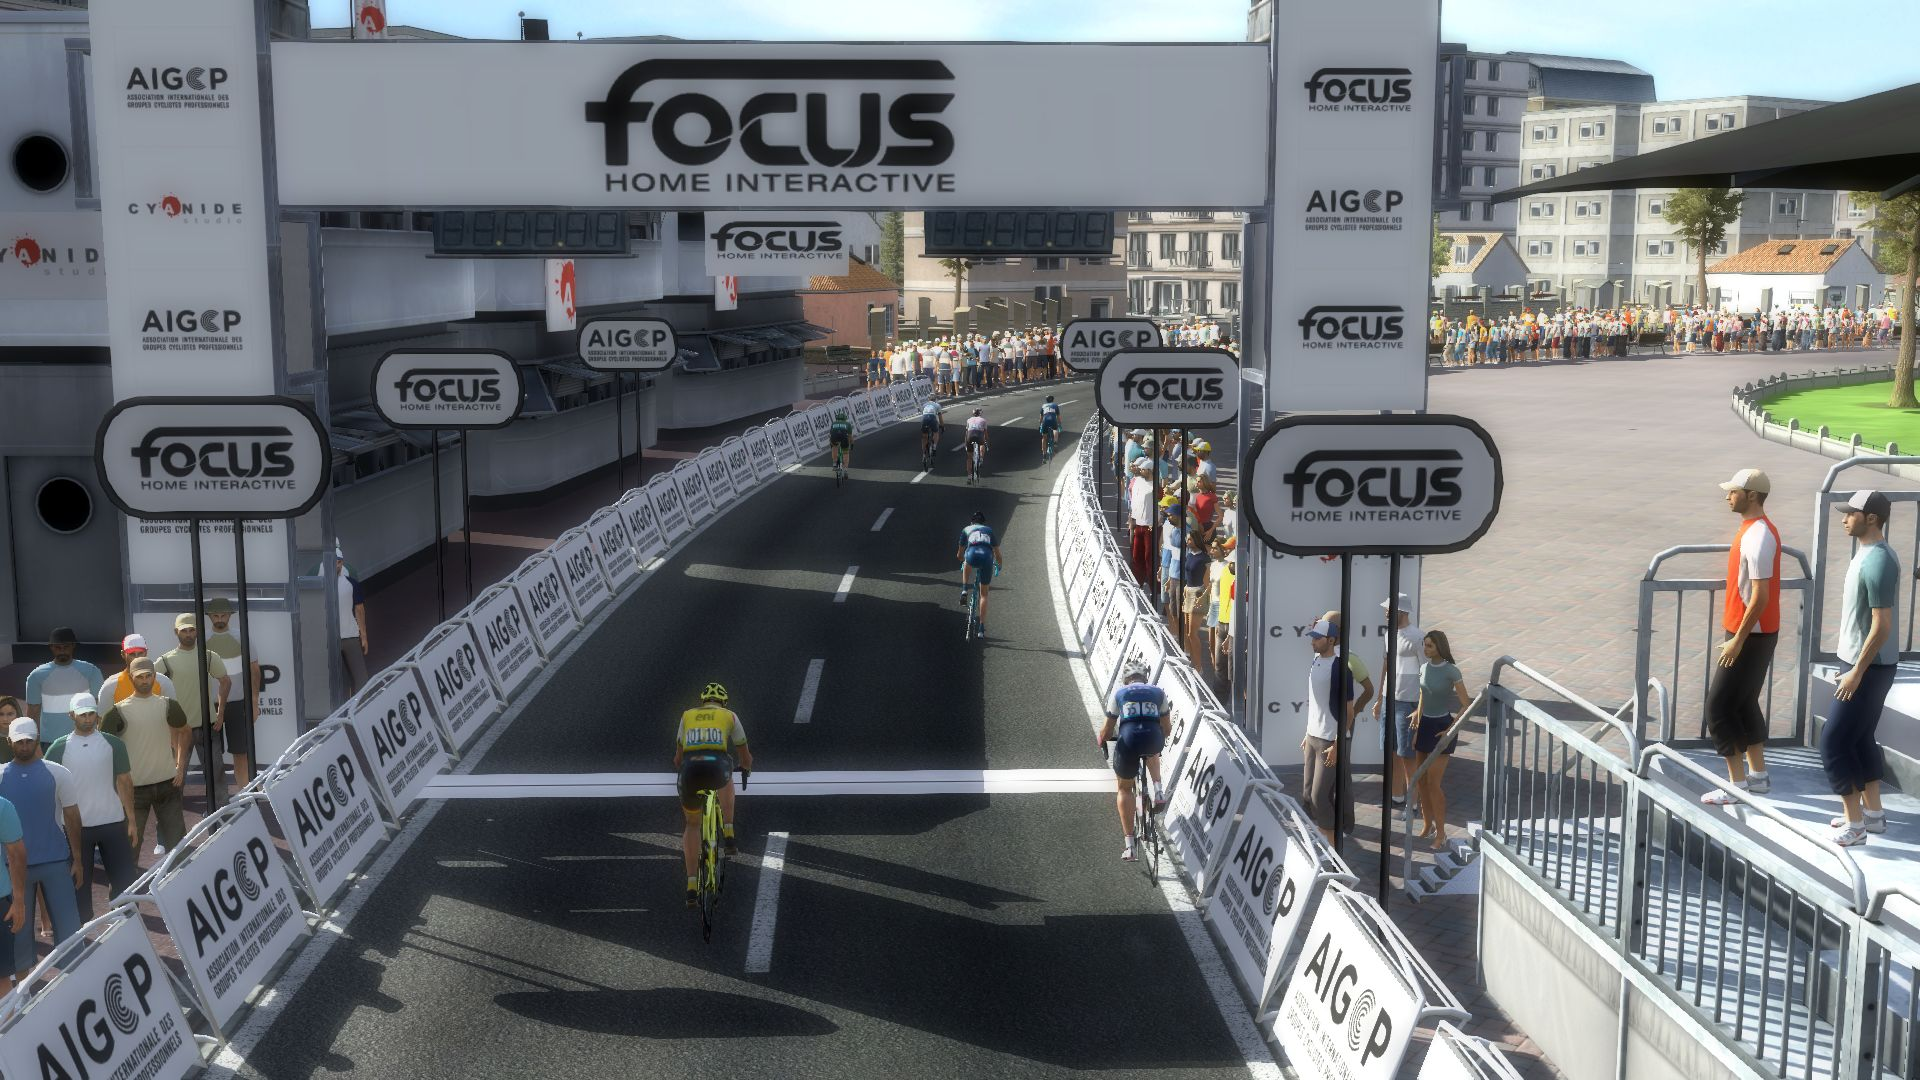 pcmdaily.com/images/mg/2019/Races/HC/Slovenie/mg19_slo_s03_21.jpg